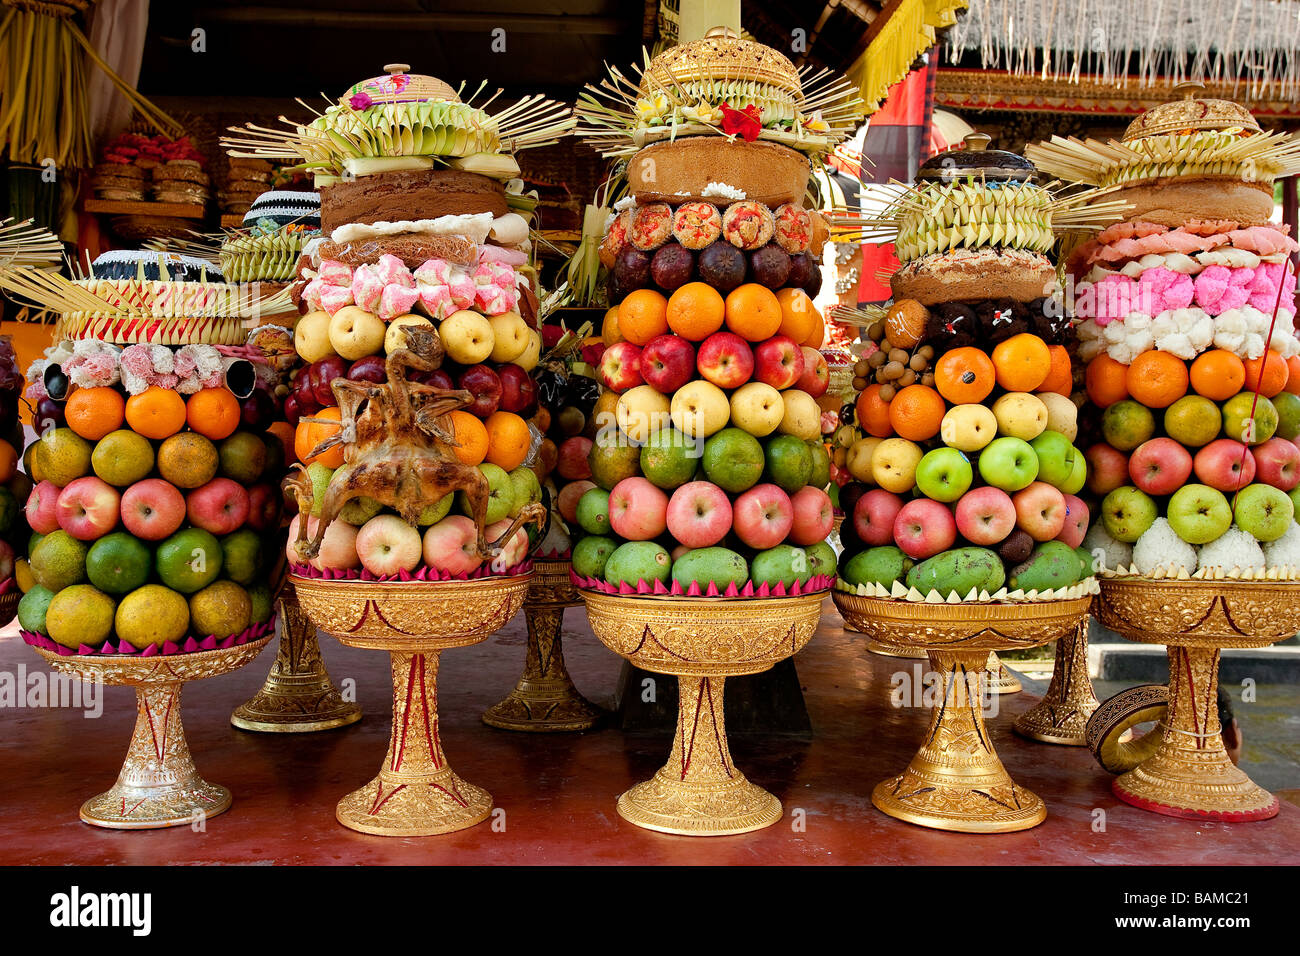 Indonesia Bali Fruits Offerings In The Temple Stock Photo